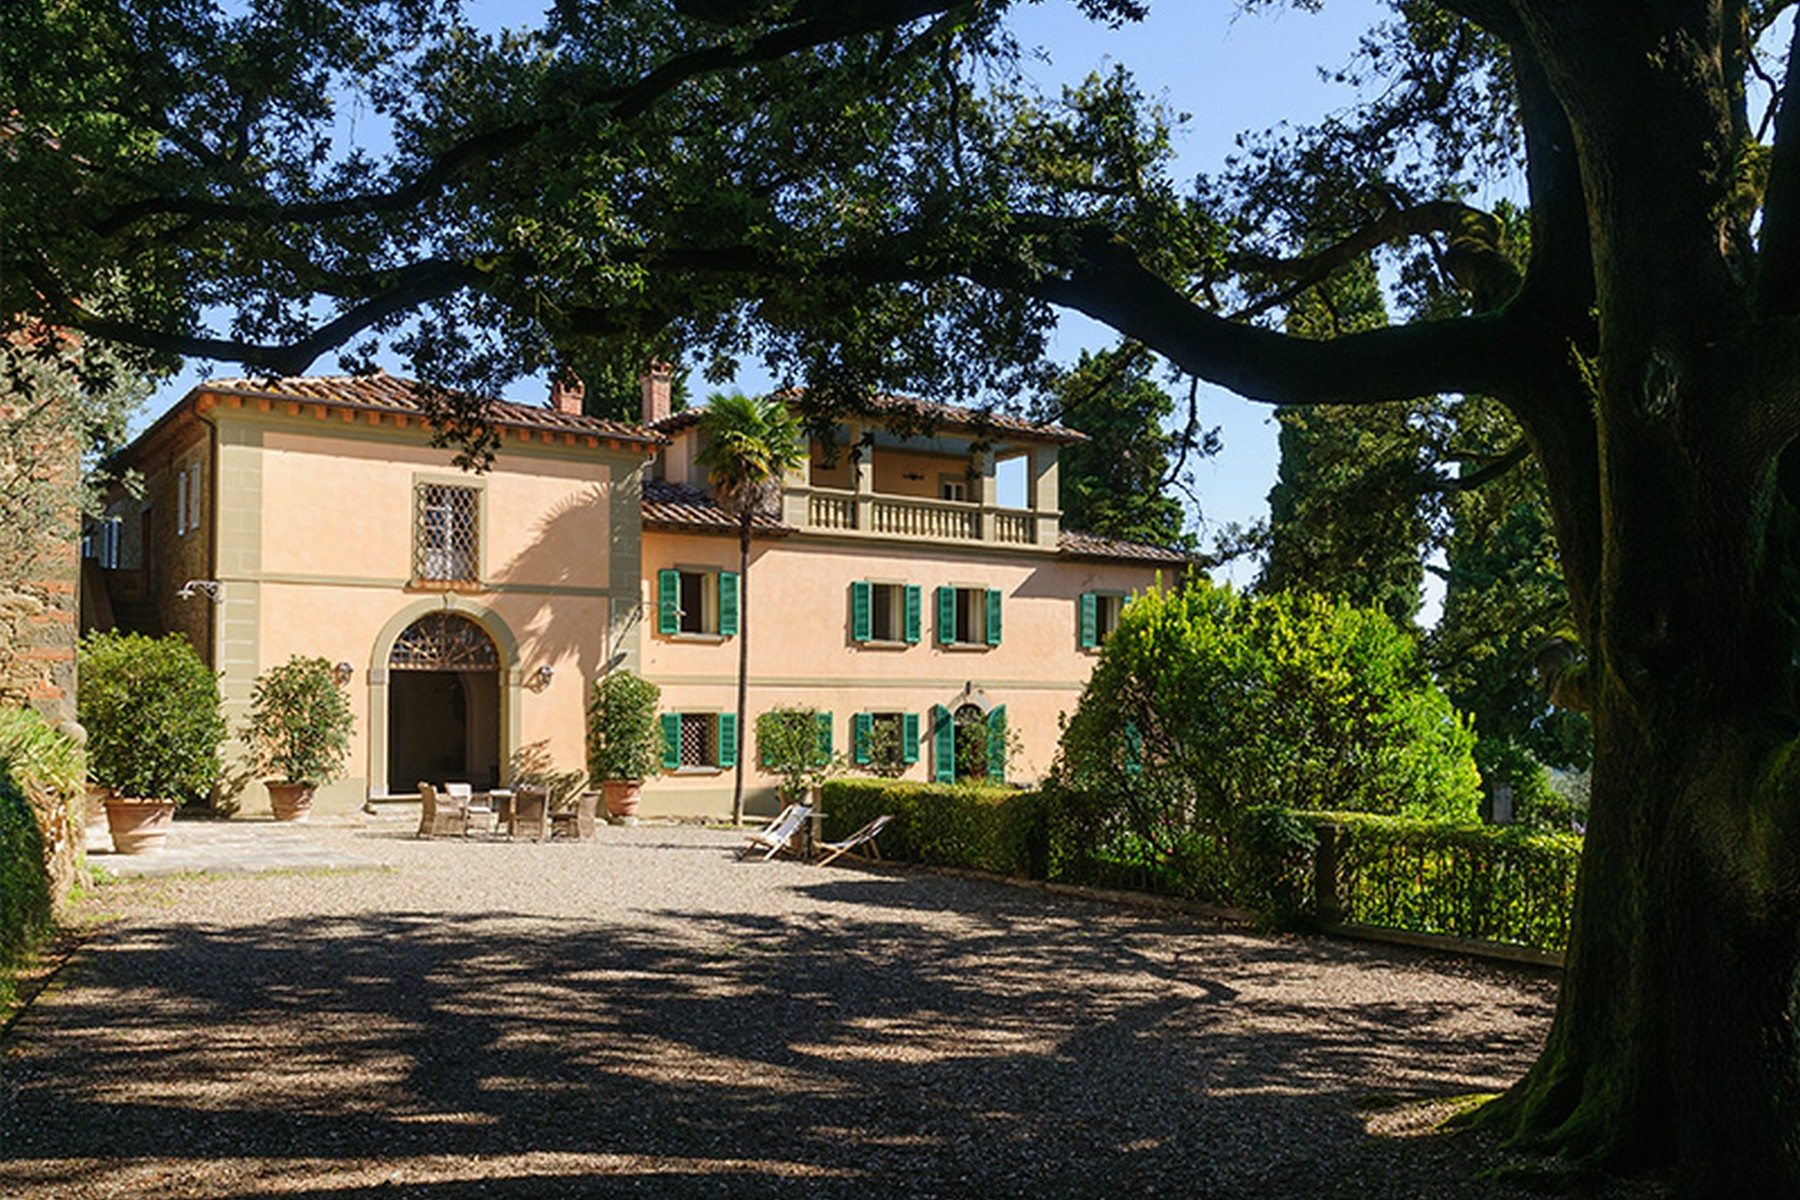 Additional photo for property listing at Splendid villa between Siena and Arezzo Monte San Savino Arezzo, Arezzo 52048 Italy